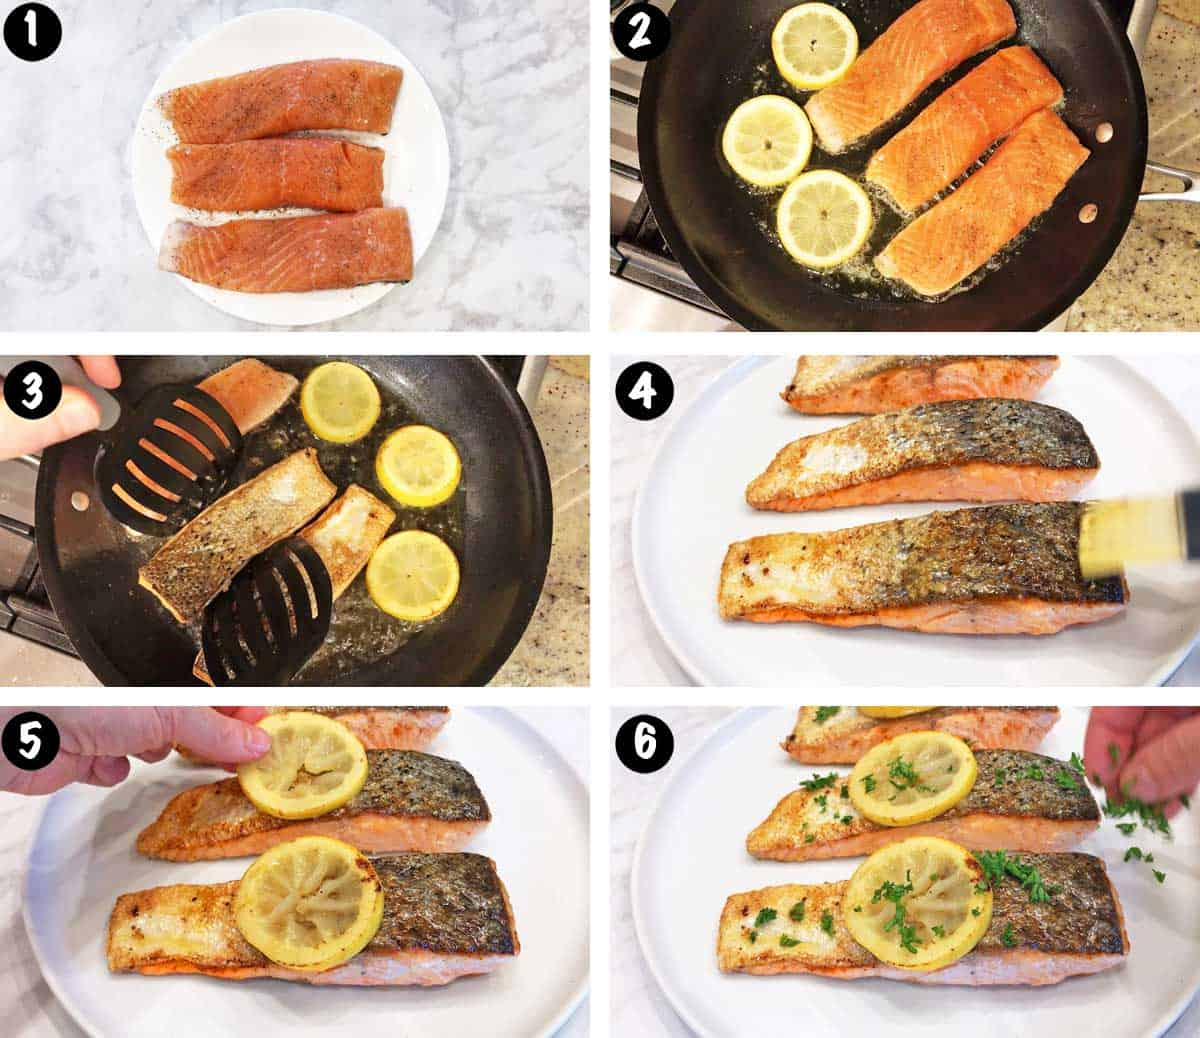 A photo collage showing the steps for pan-frying salmon fillets.